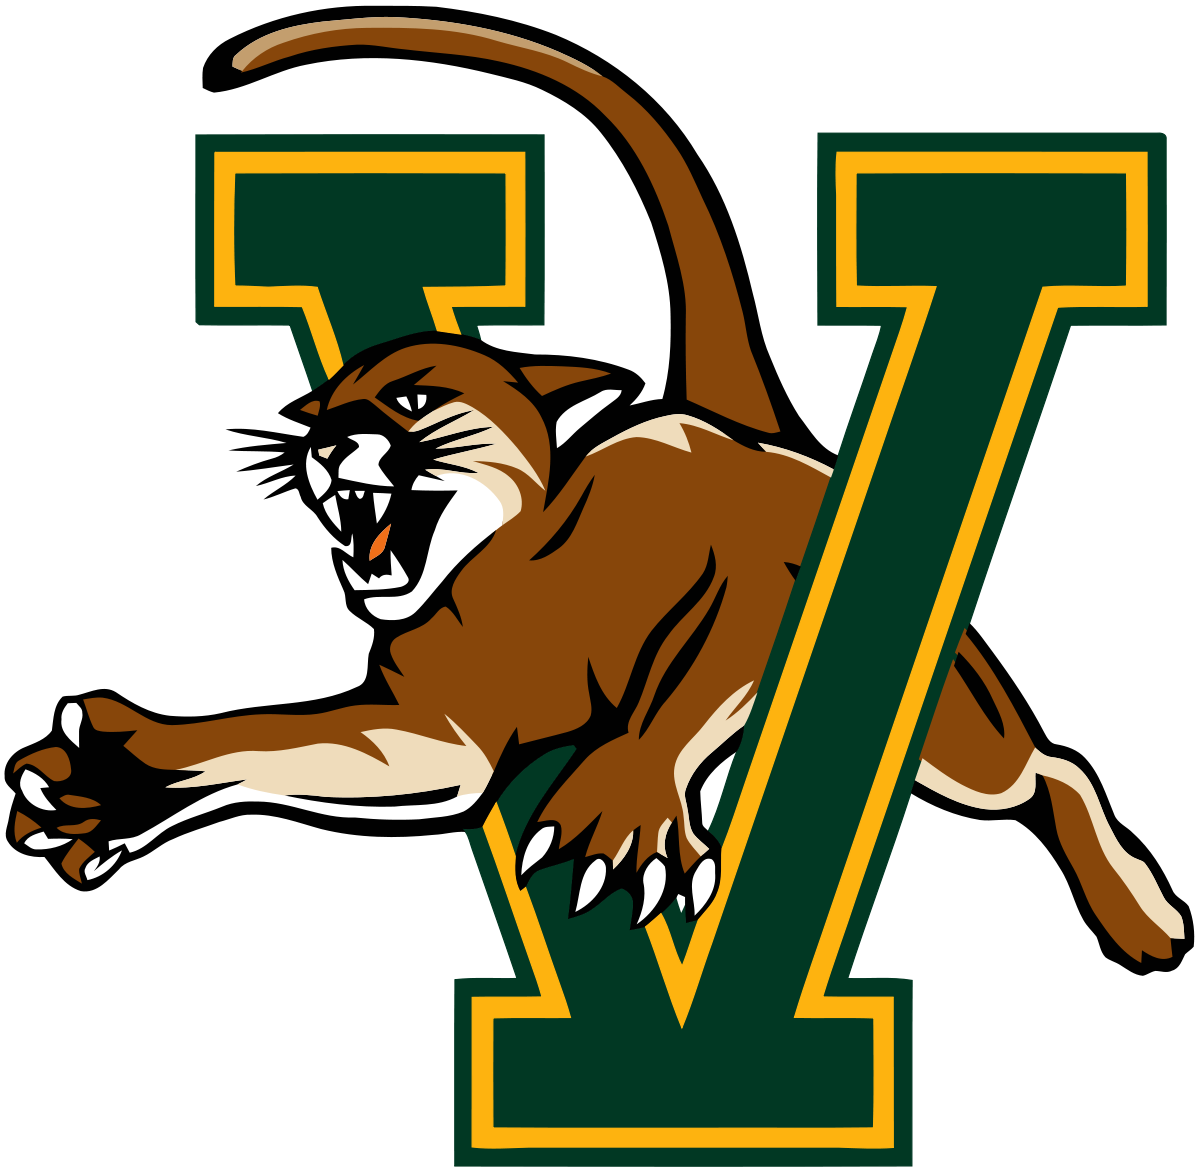 Know thy enemy uvm. Track clipart cat